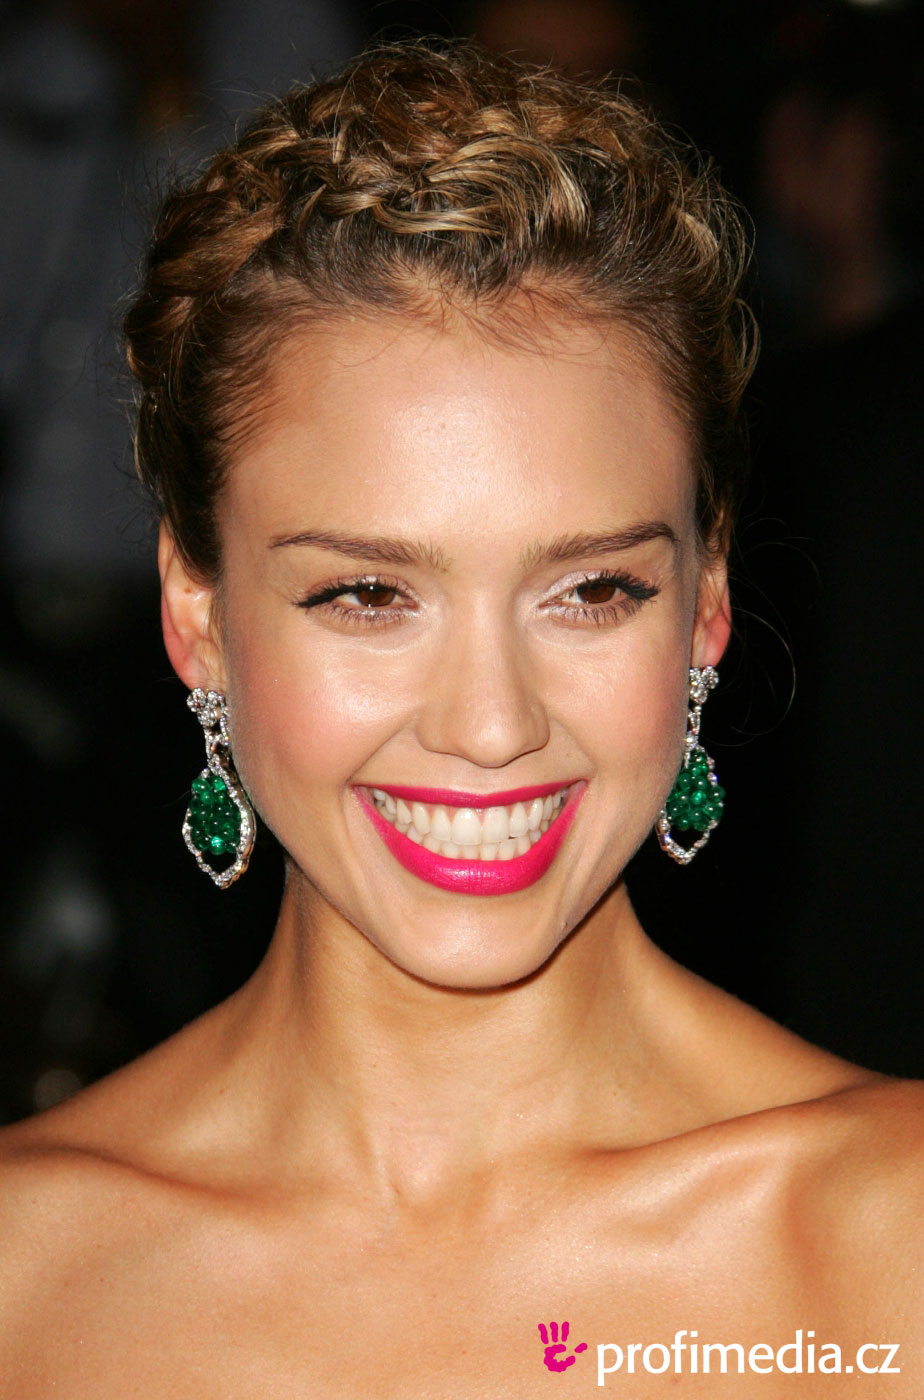 Jessica Alba Romance Hairstyles Pictures, Long Hairstyle 2013, Hairstyle 2013, New Long Hairstyle 2013, Celebrity Long Romance Hairstyles 2029